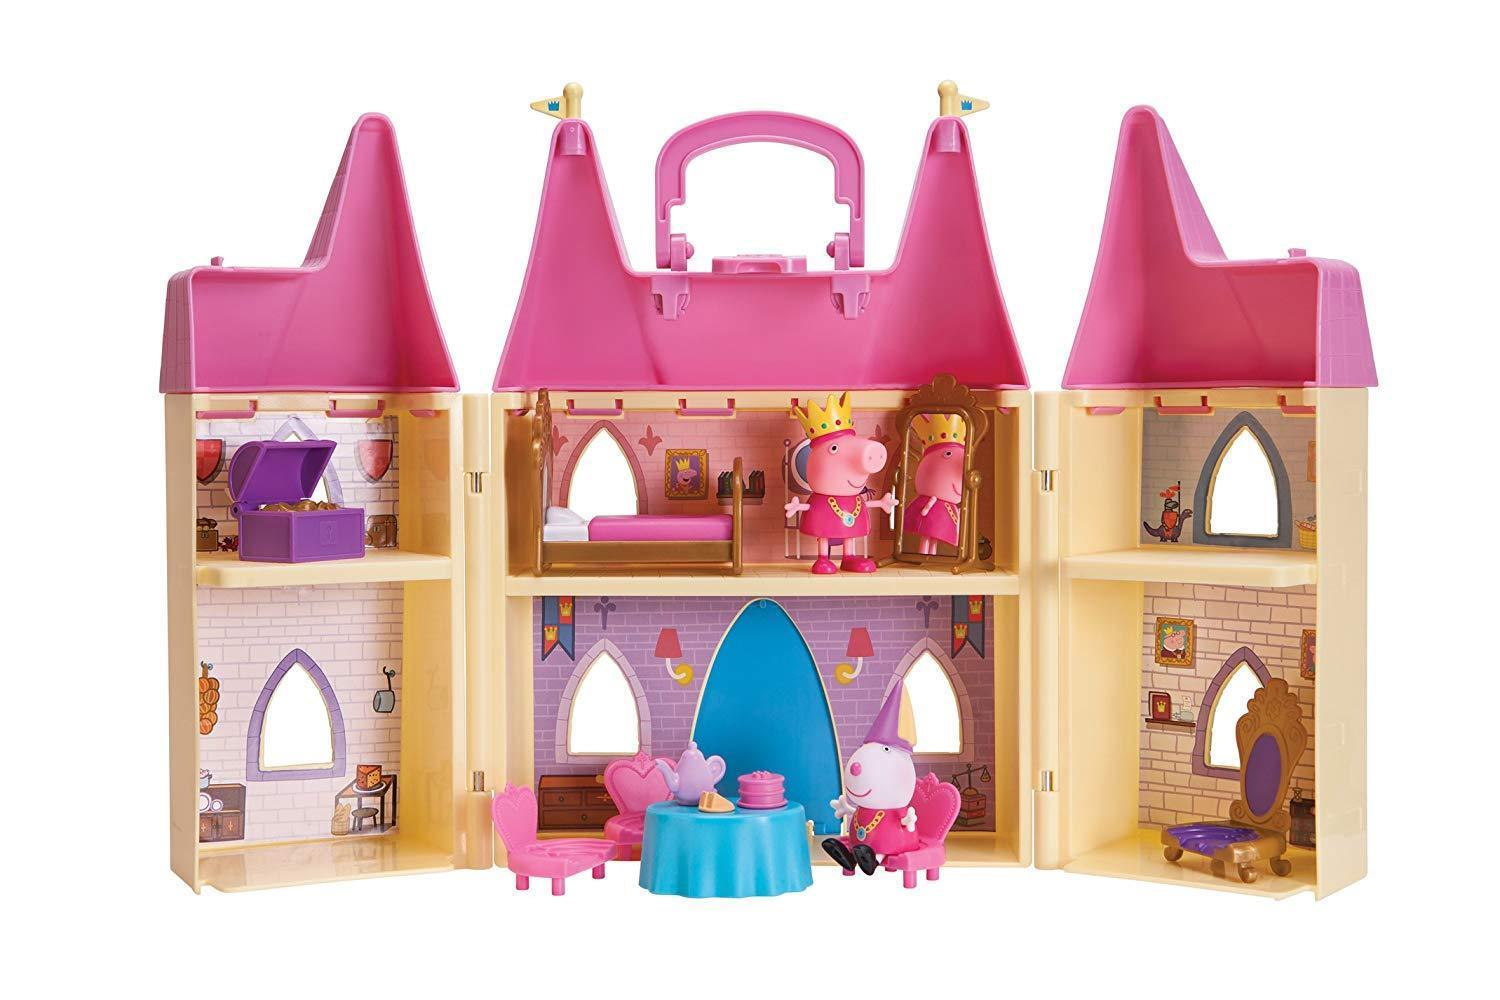 Peppa Pig's Princess Castle Deluxe Playset [New] Children's Toy Set